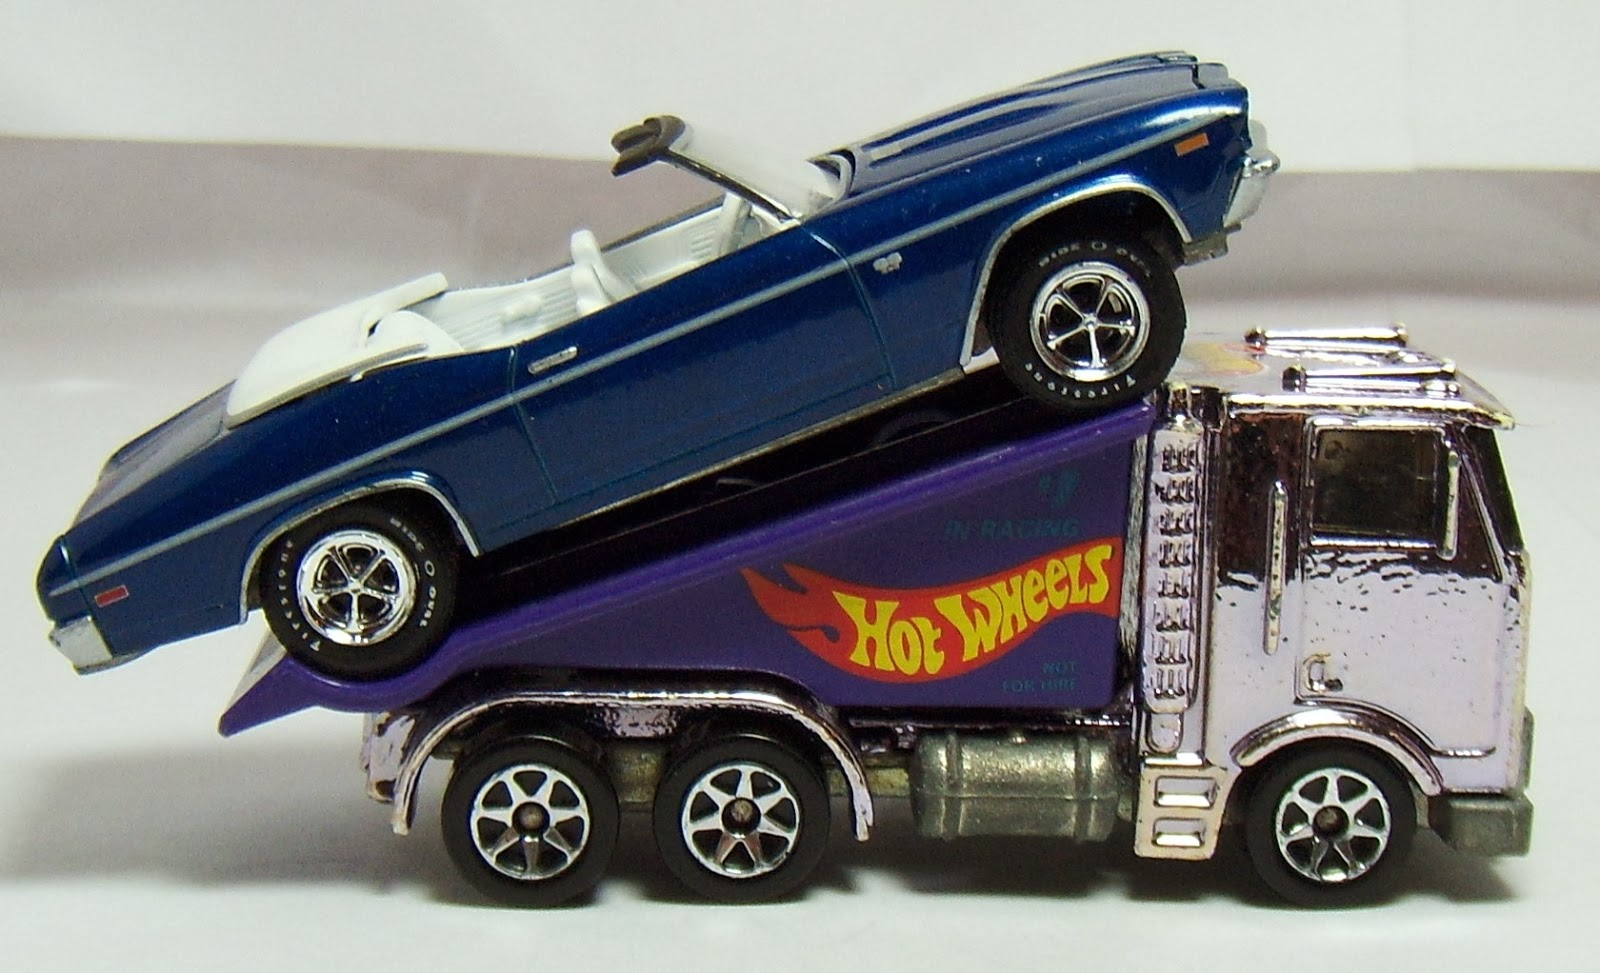 Finally maisto made one with the same exact ramp as the hot wheels version but the casting maisto used was a generic version of an isuzu coe truck